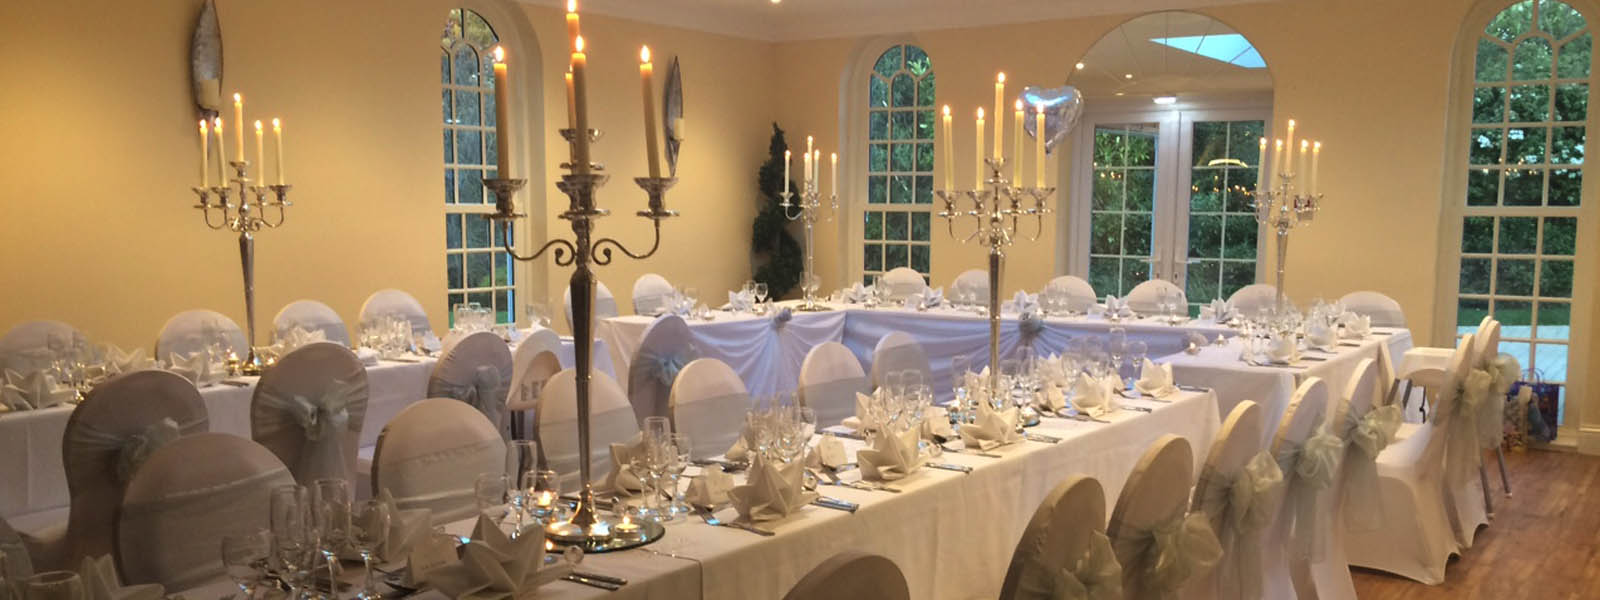 Wedding venue Teesside North Yorkshire